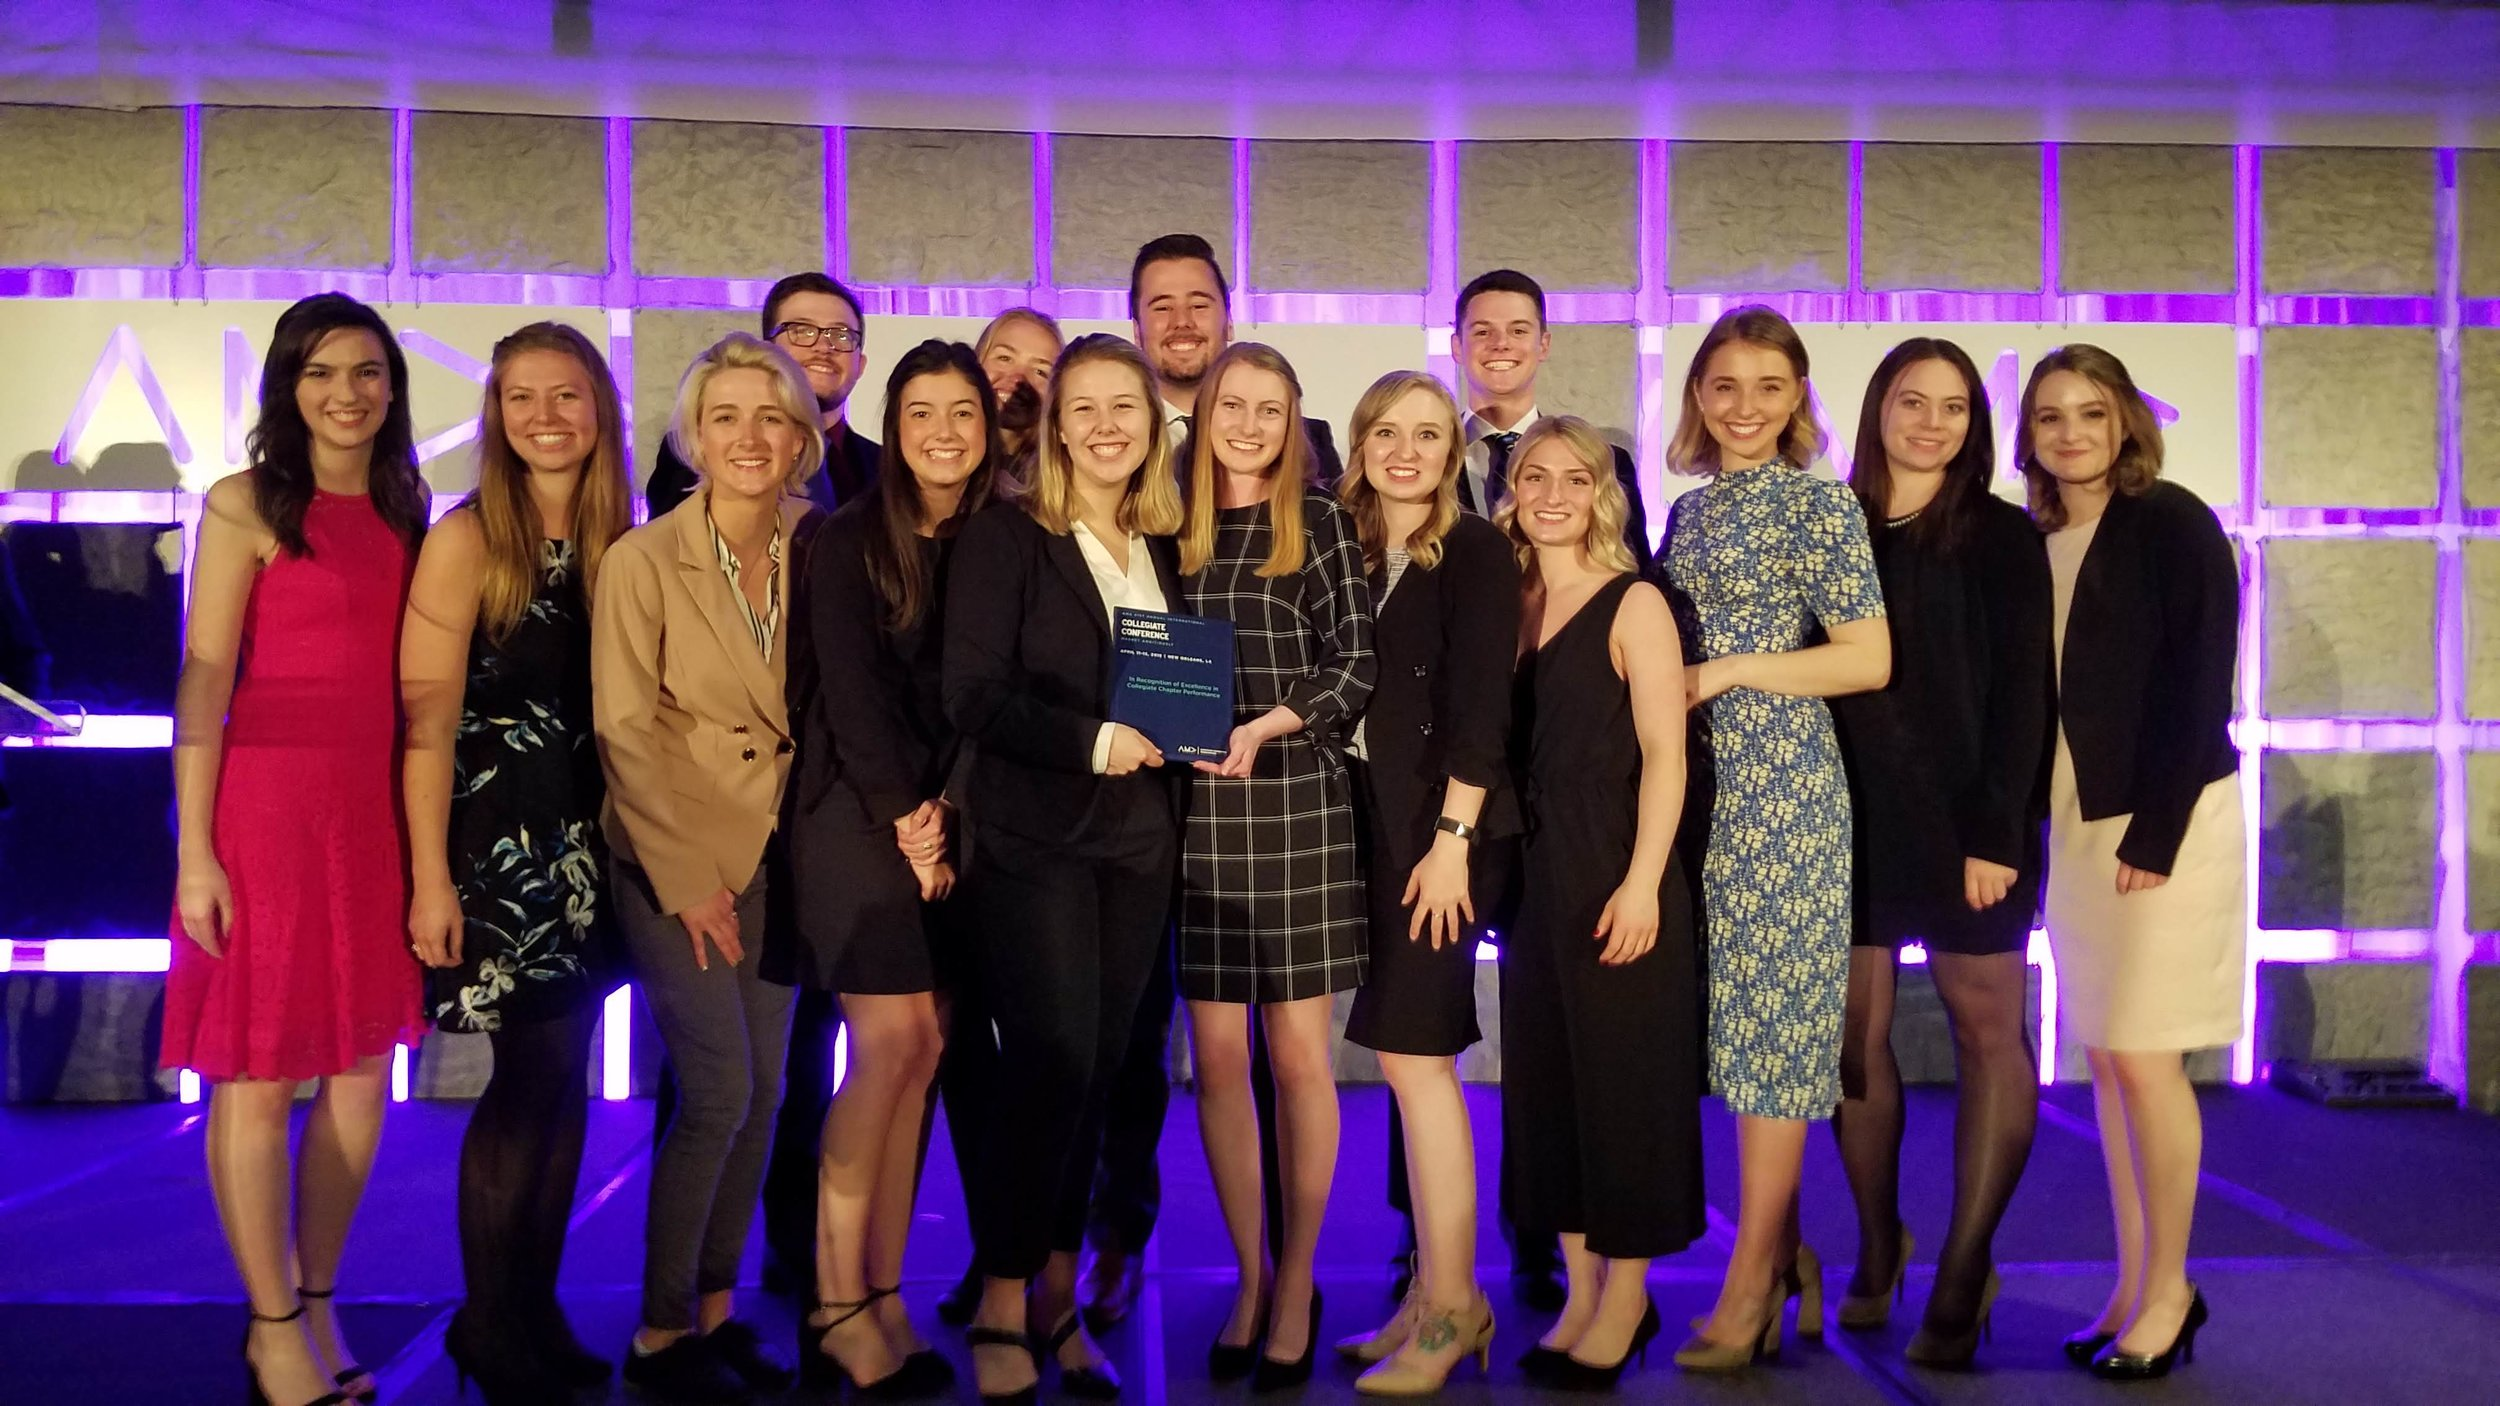 2018-2019 - Top 20 International Collegiate ChapterMarketing Strategy Competition - 1st PlaceMarketing Research Poster - 1st PlaceNational Marketing Student of the Year - Runner UpNational Sales Competition - 3rd PlaceBest Website - 3rd PlaceBest Marketing Week - Honorable MentionAMA Case Competition - Honorable MentionPitch Perfect Competition - FinalistSABRE Business Simulation - 15th Overall